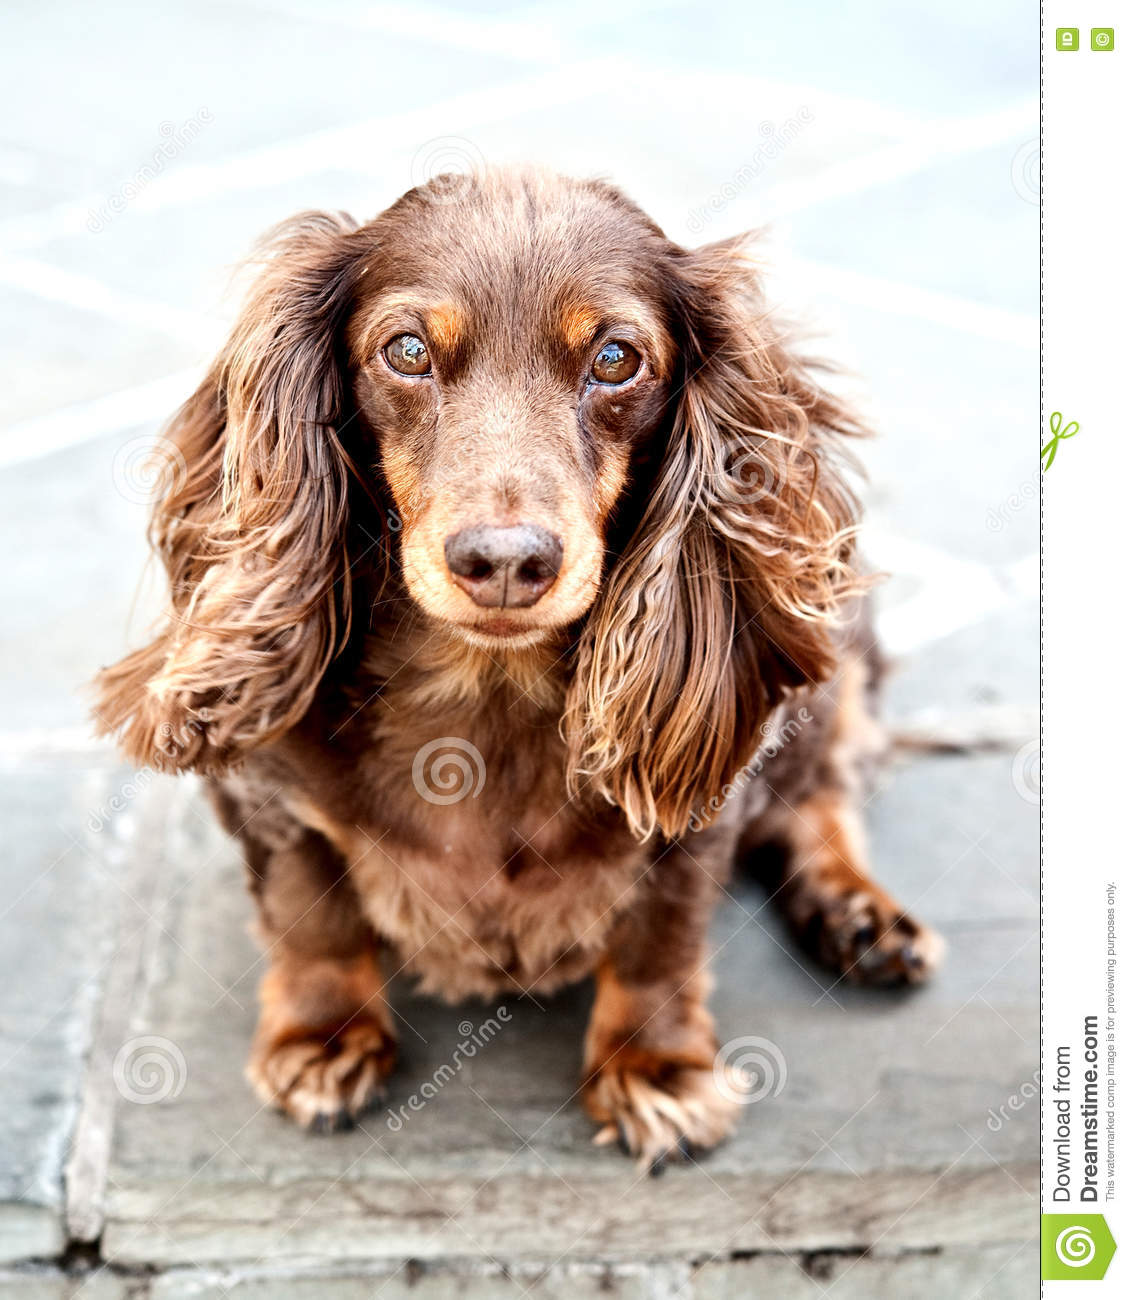 Cute Long Haired Dachshund stock photo. Image of background - 12